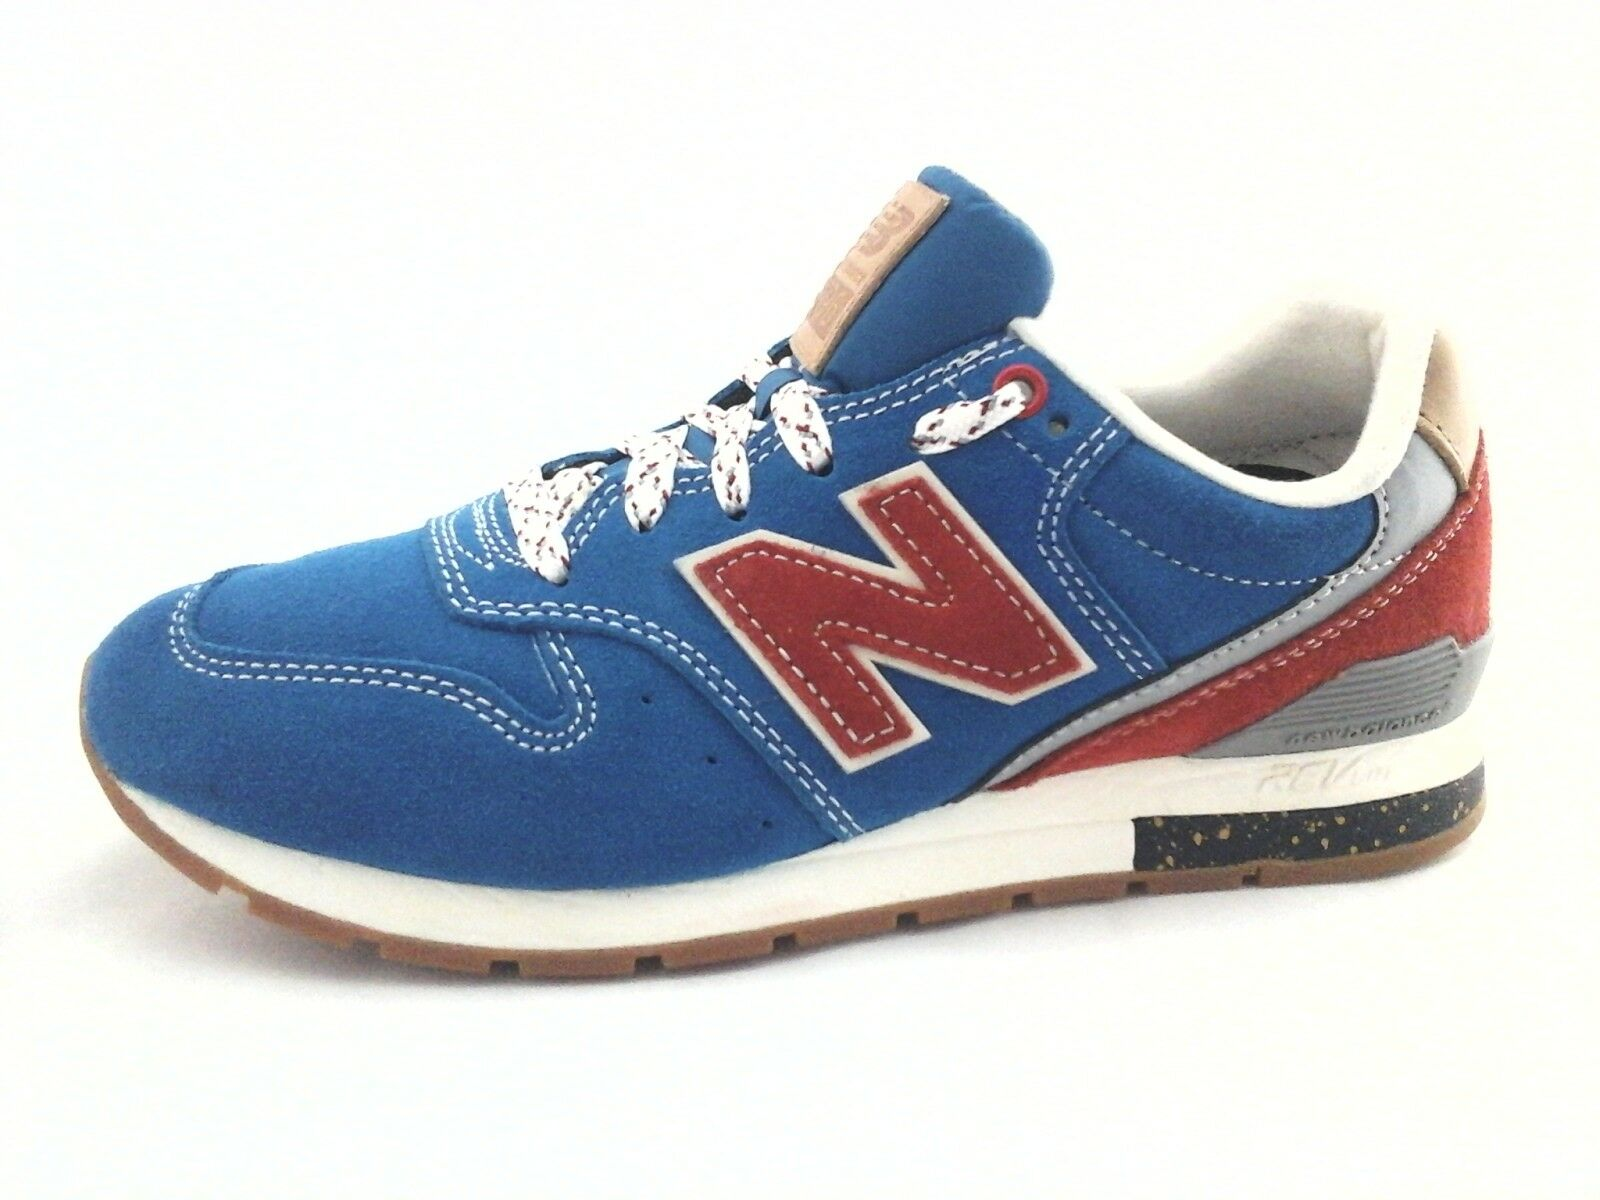 NEW BALANCE 996 bluee Red Suede Retro shoes MRL996AT Men's Mens 5.5 Women's 7 New